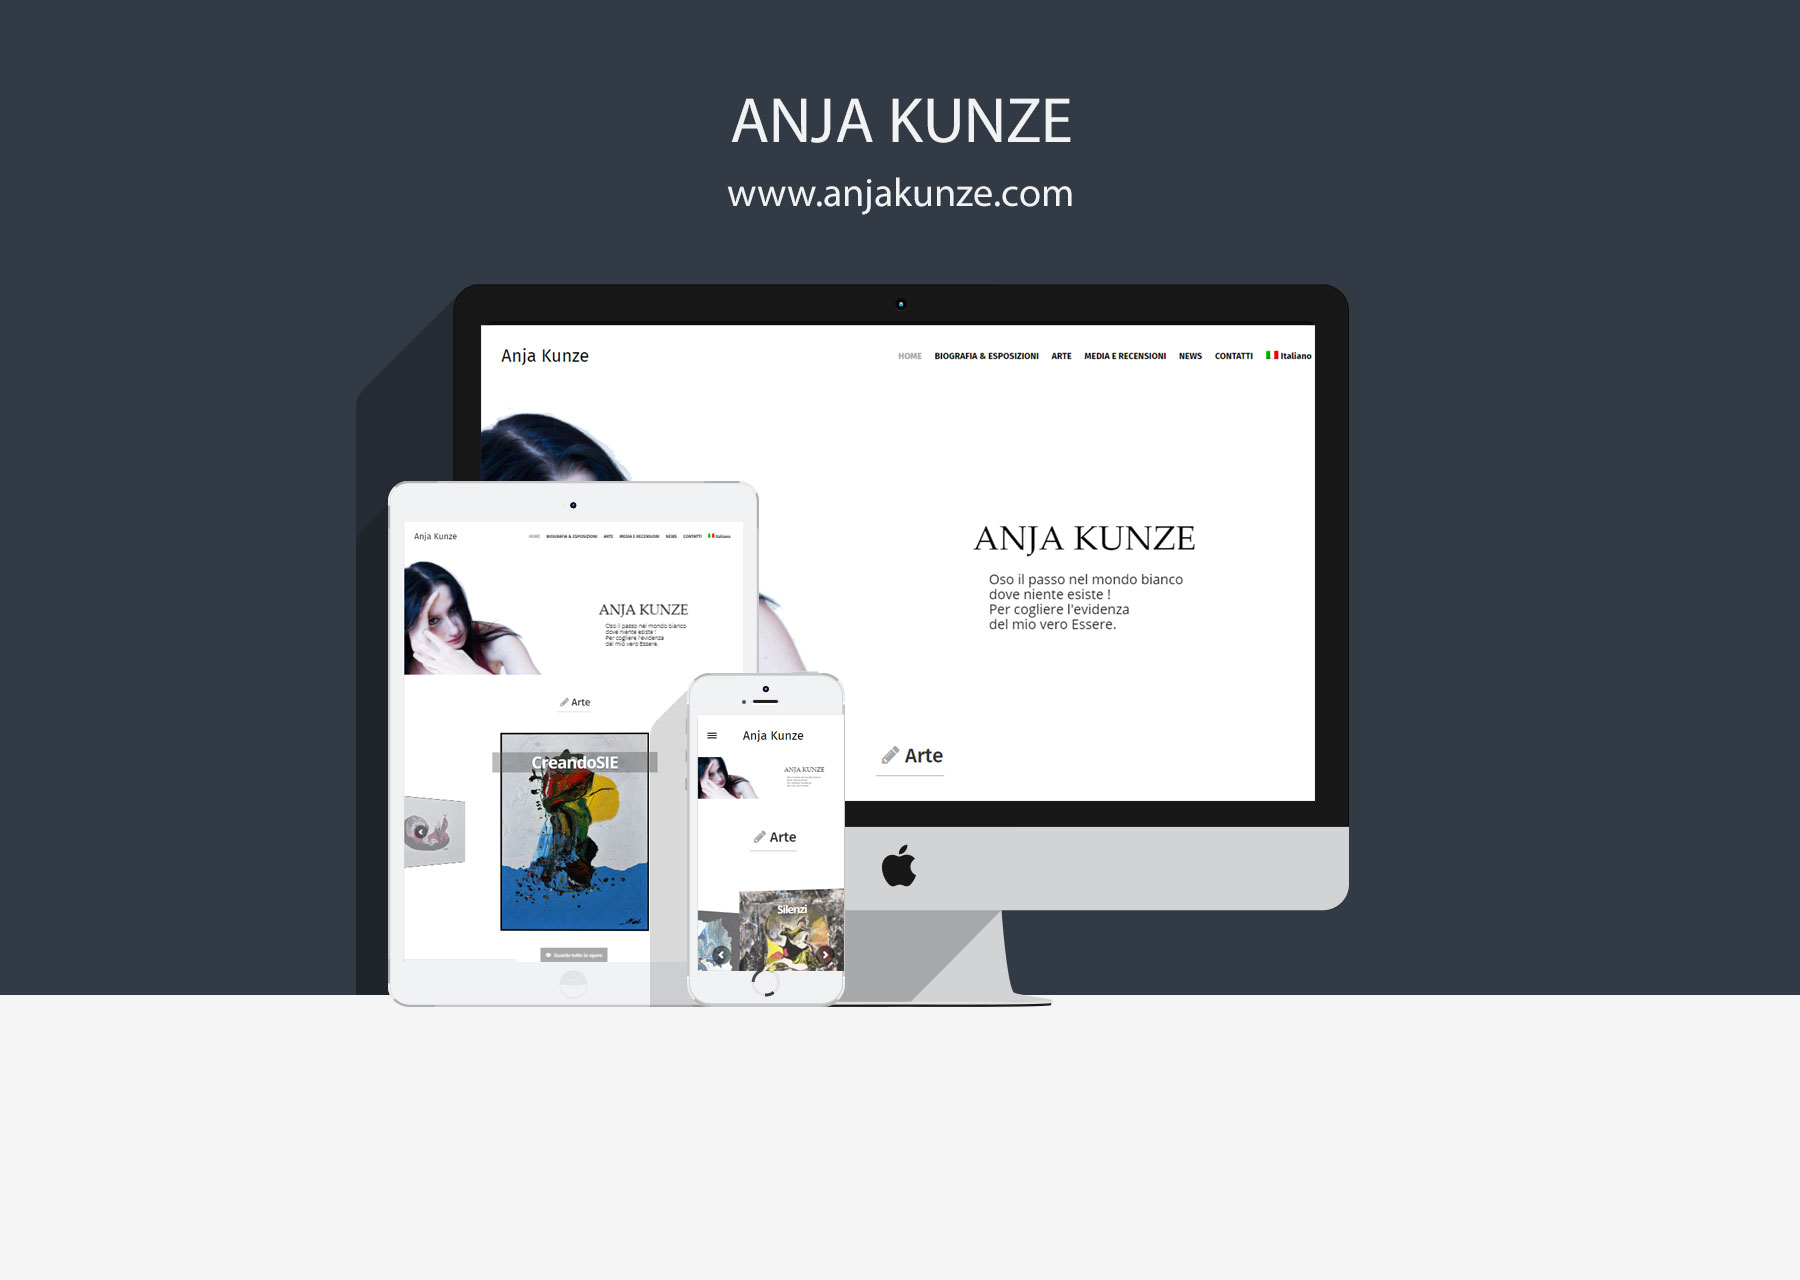 preview-idevices-anjakunze